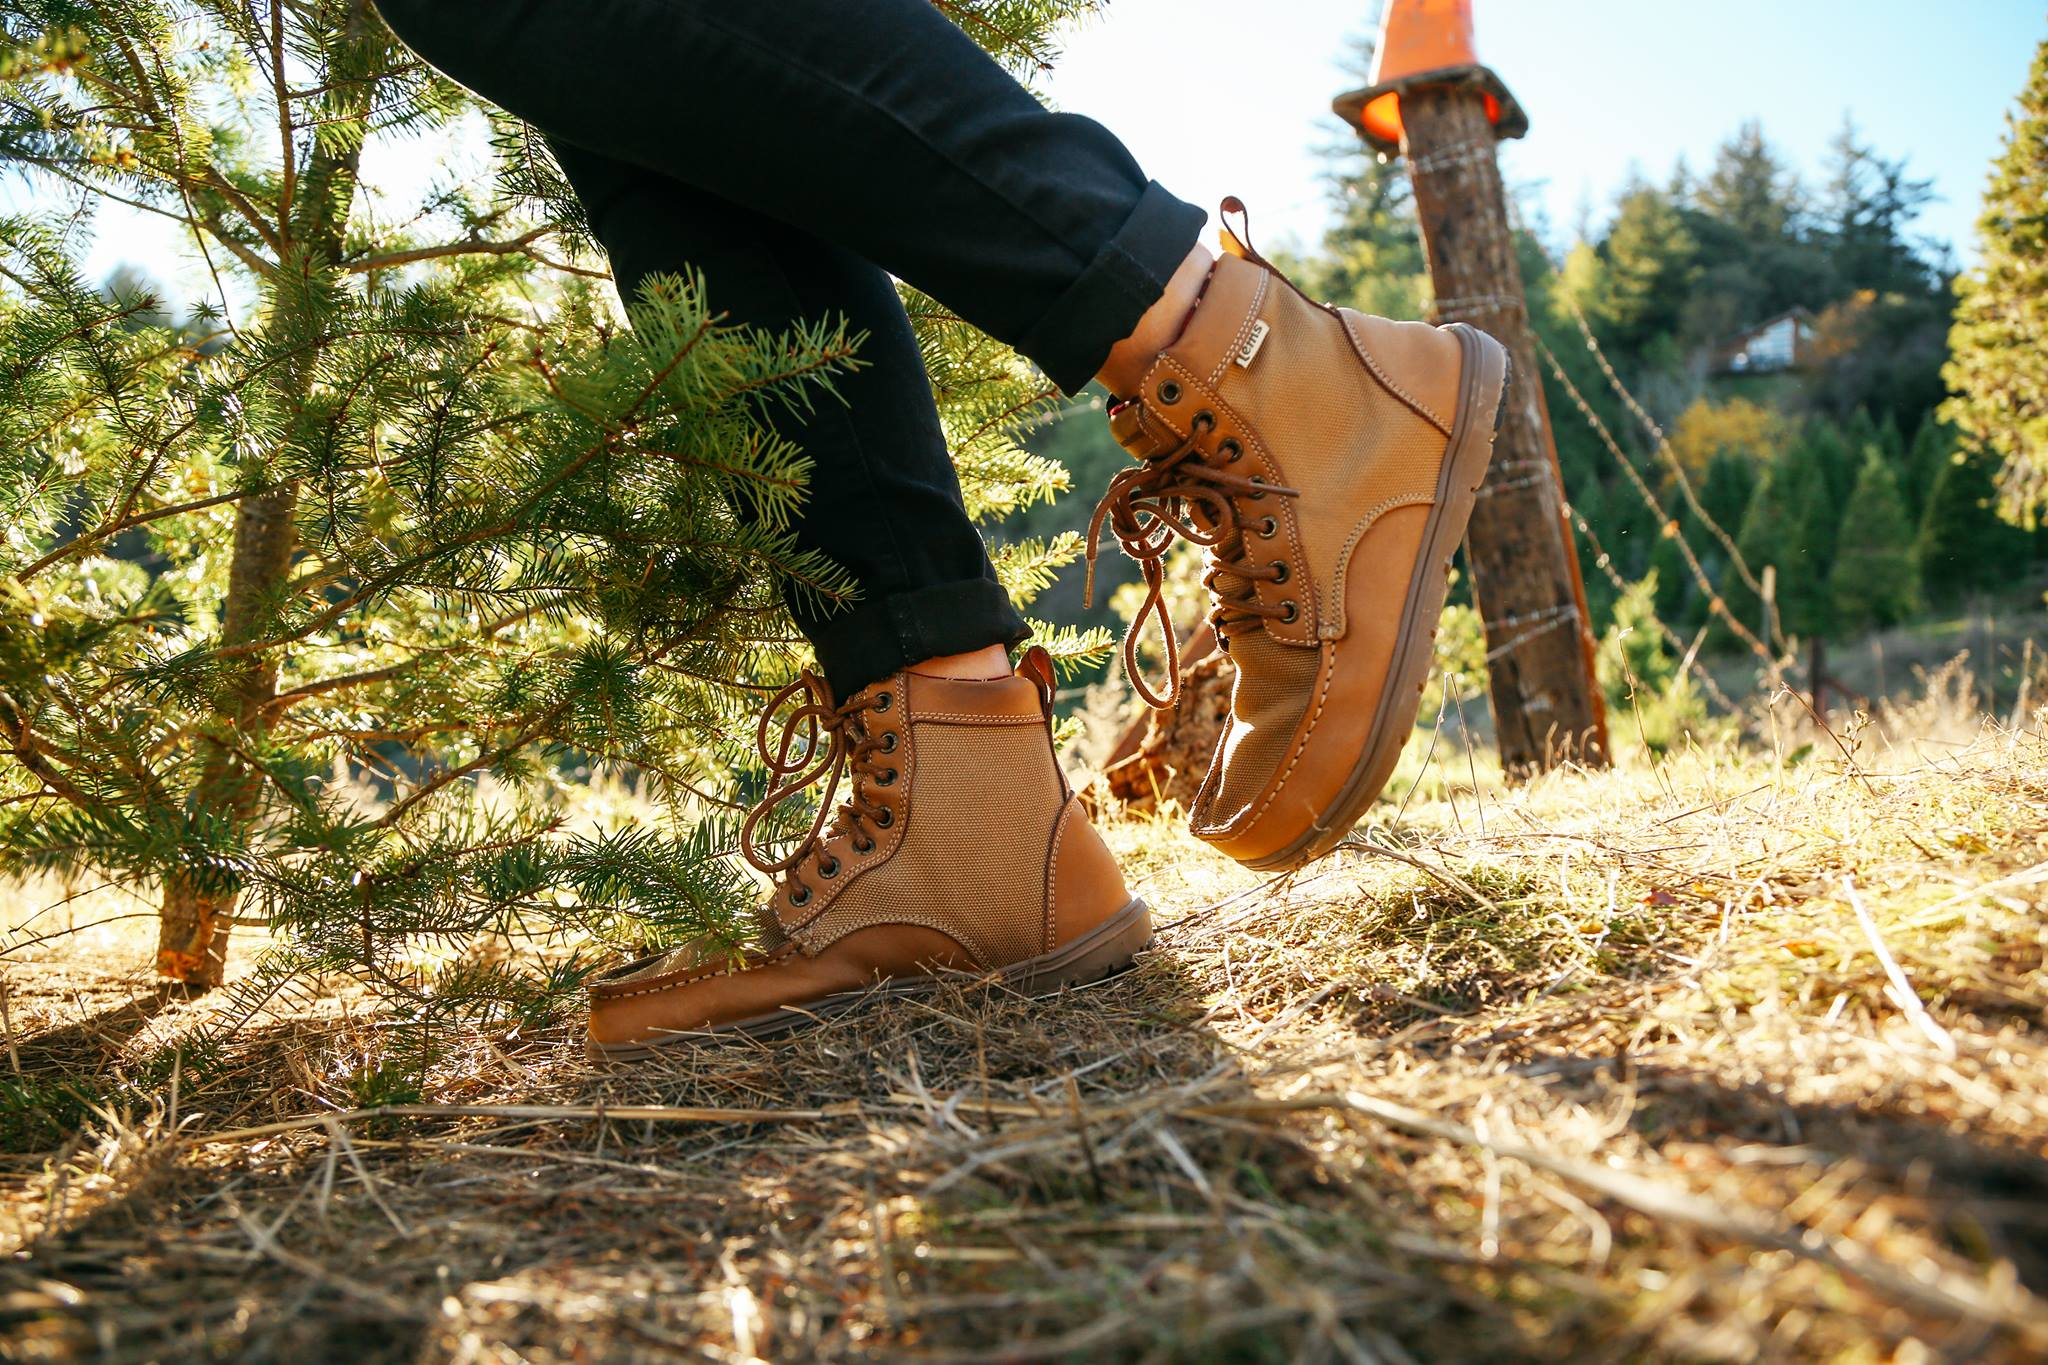 Every Company Making Zero Drop Boots For Hiking